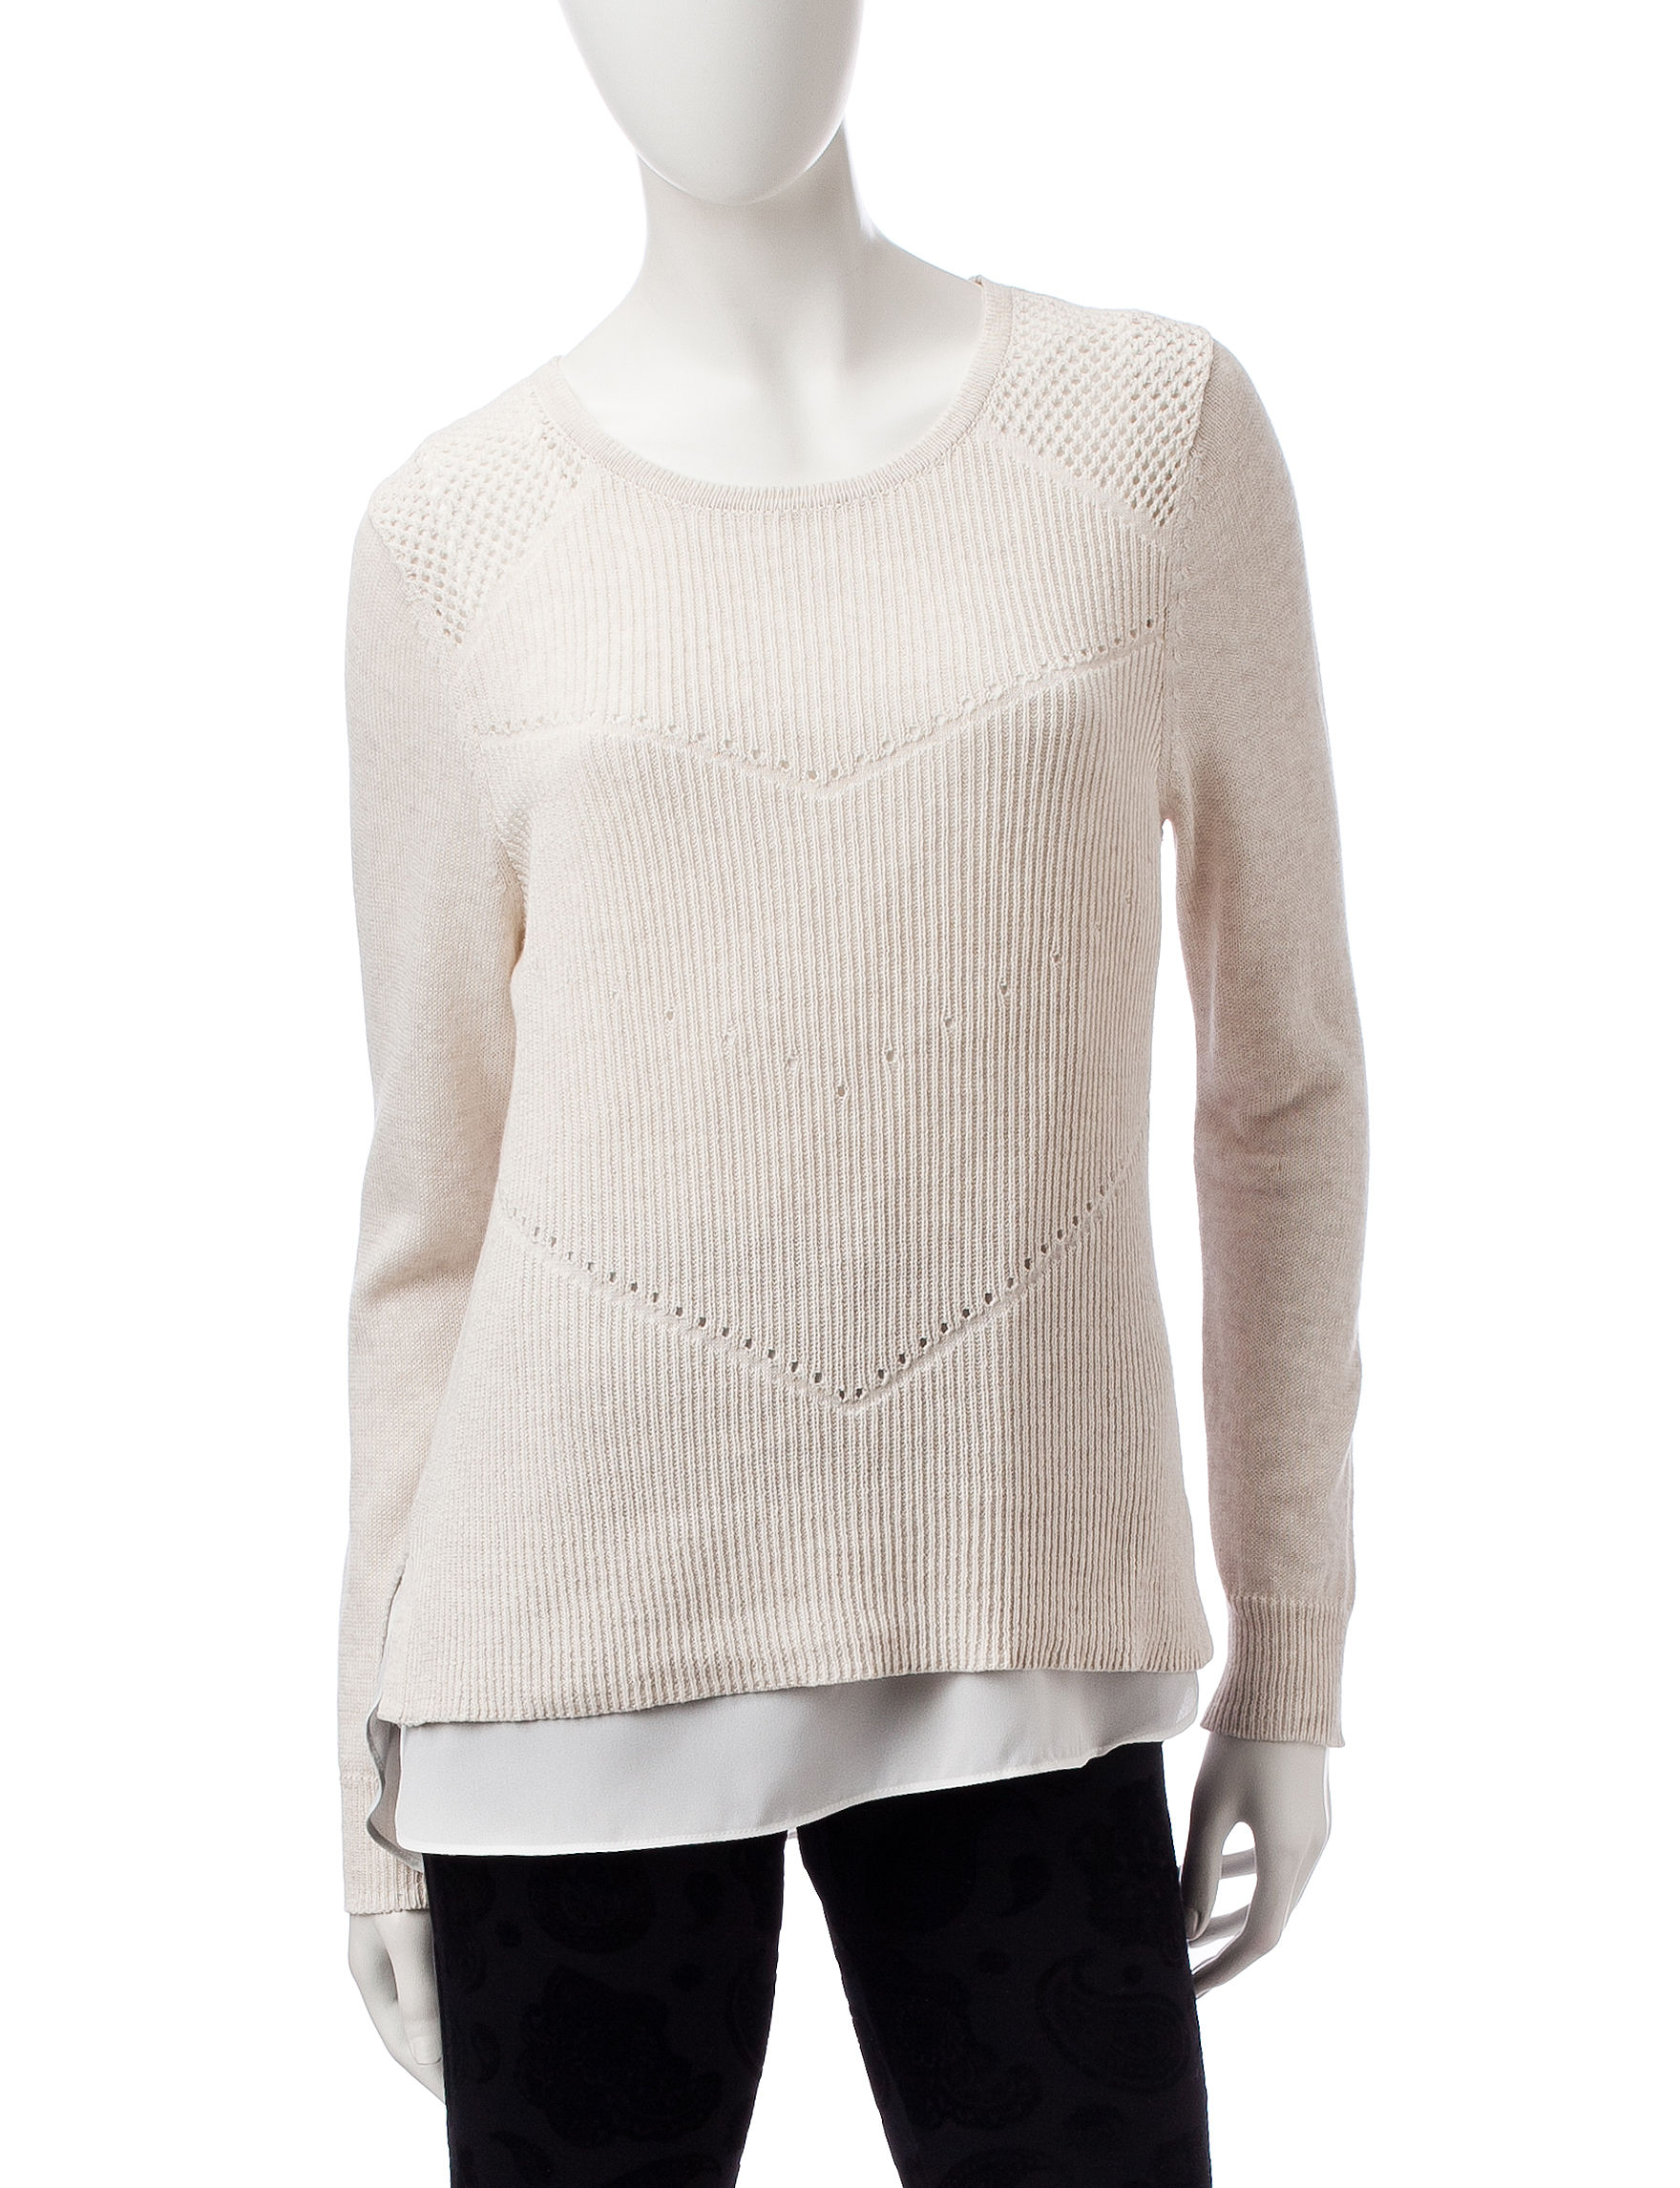 A. Byer White Pull-overs